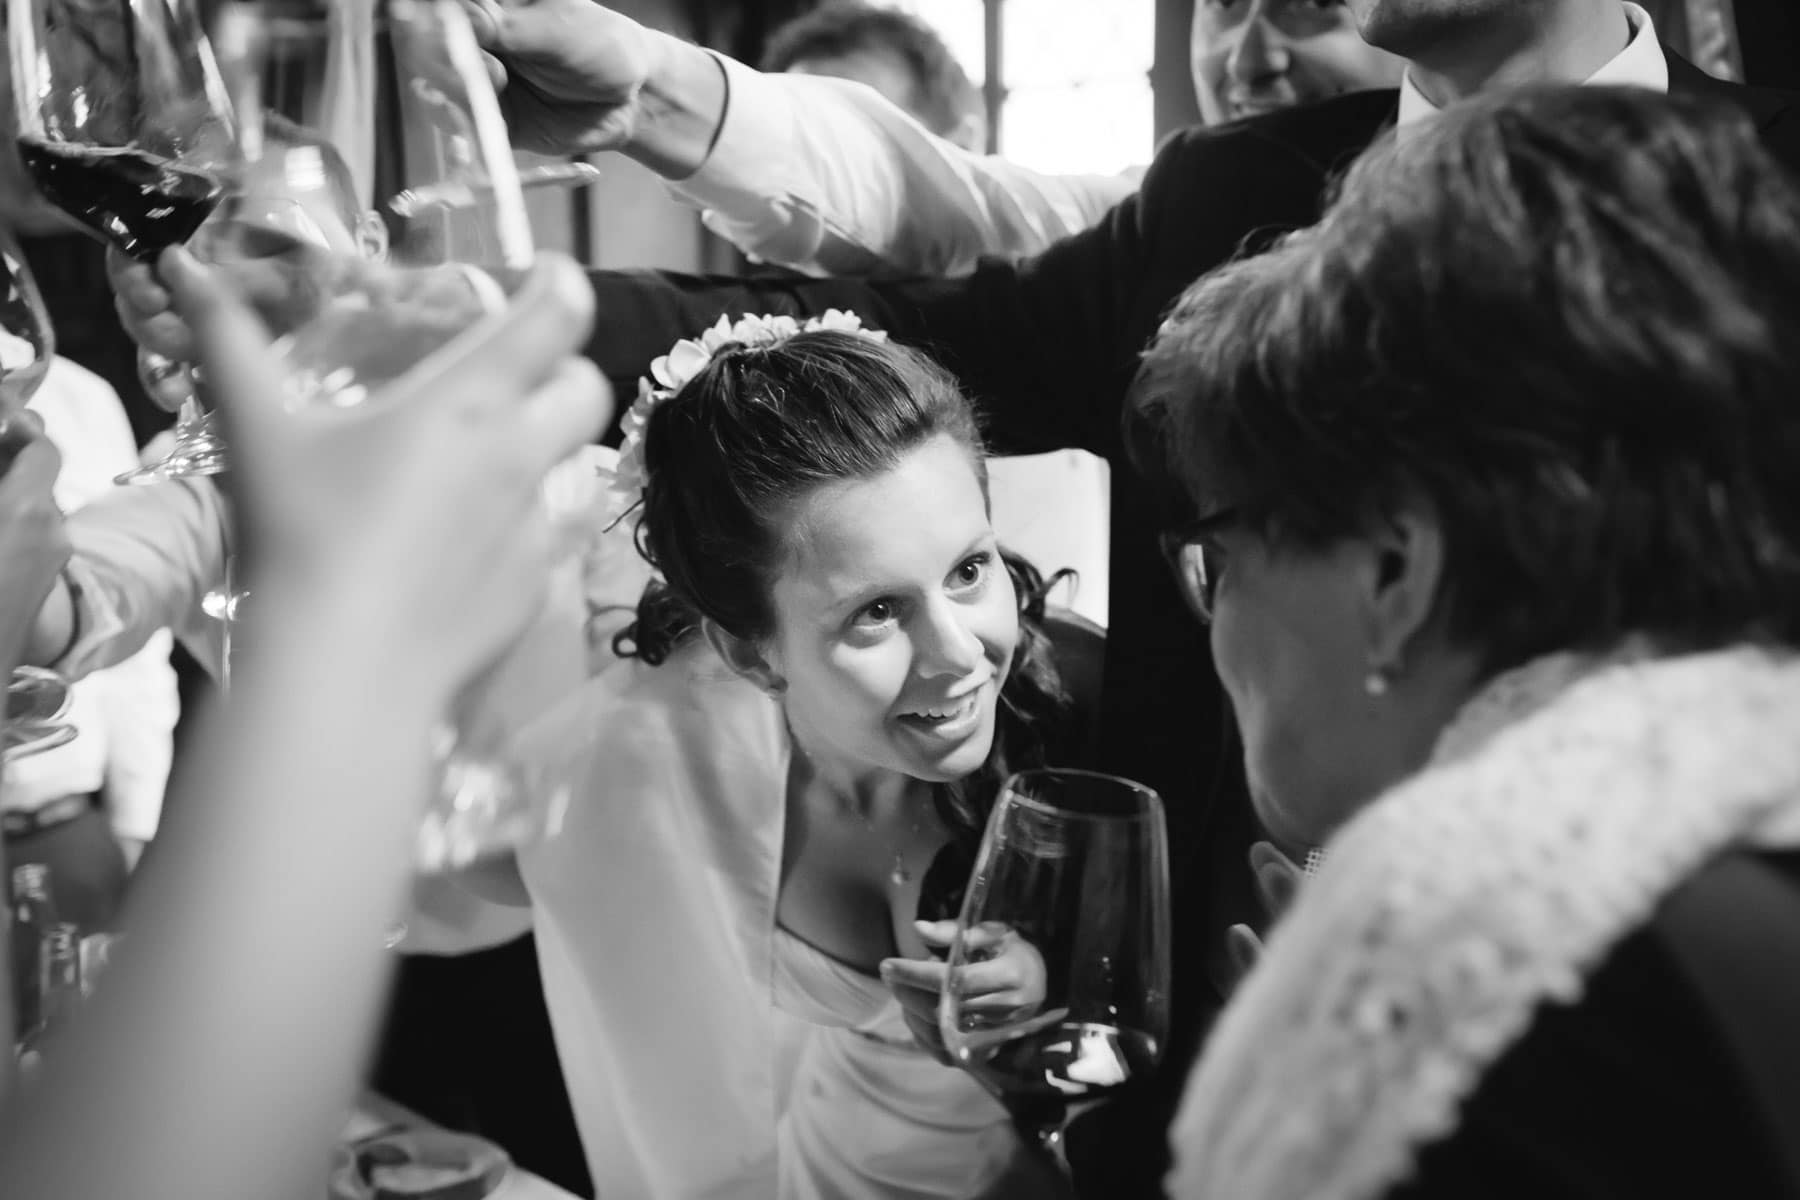 The bride exchanges some words with her mother as guests and groom raise a toast over her head during reception during a destination wedding in Castello Dal Pozzo, Italy.